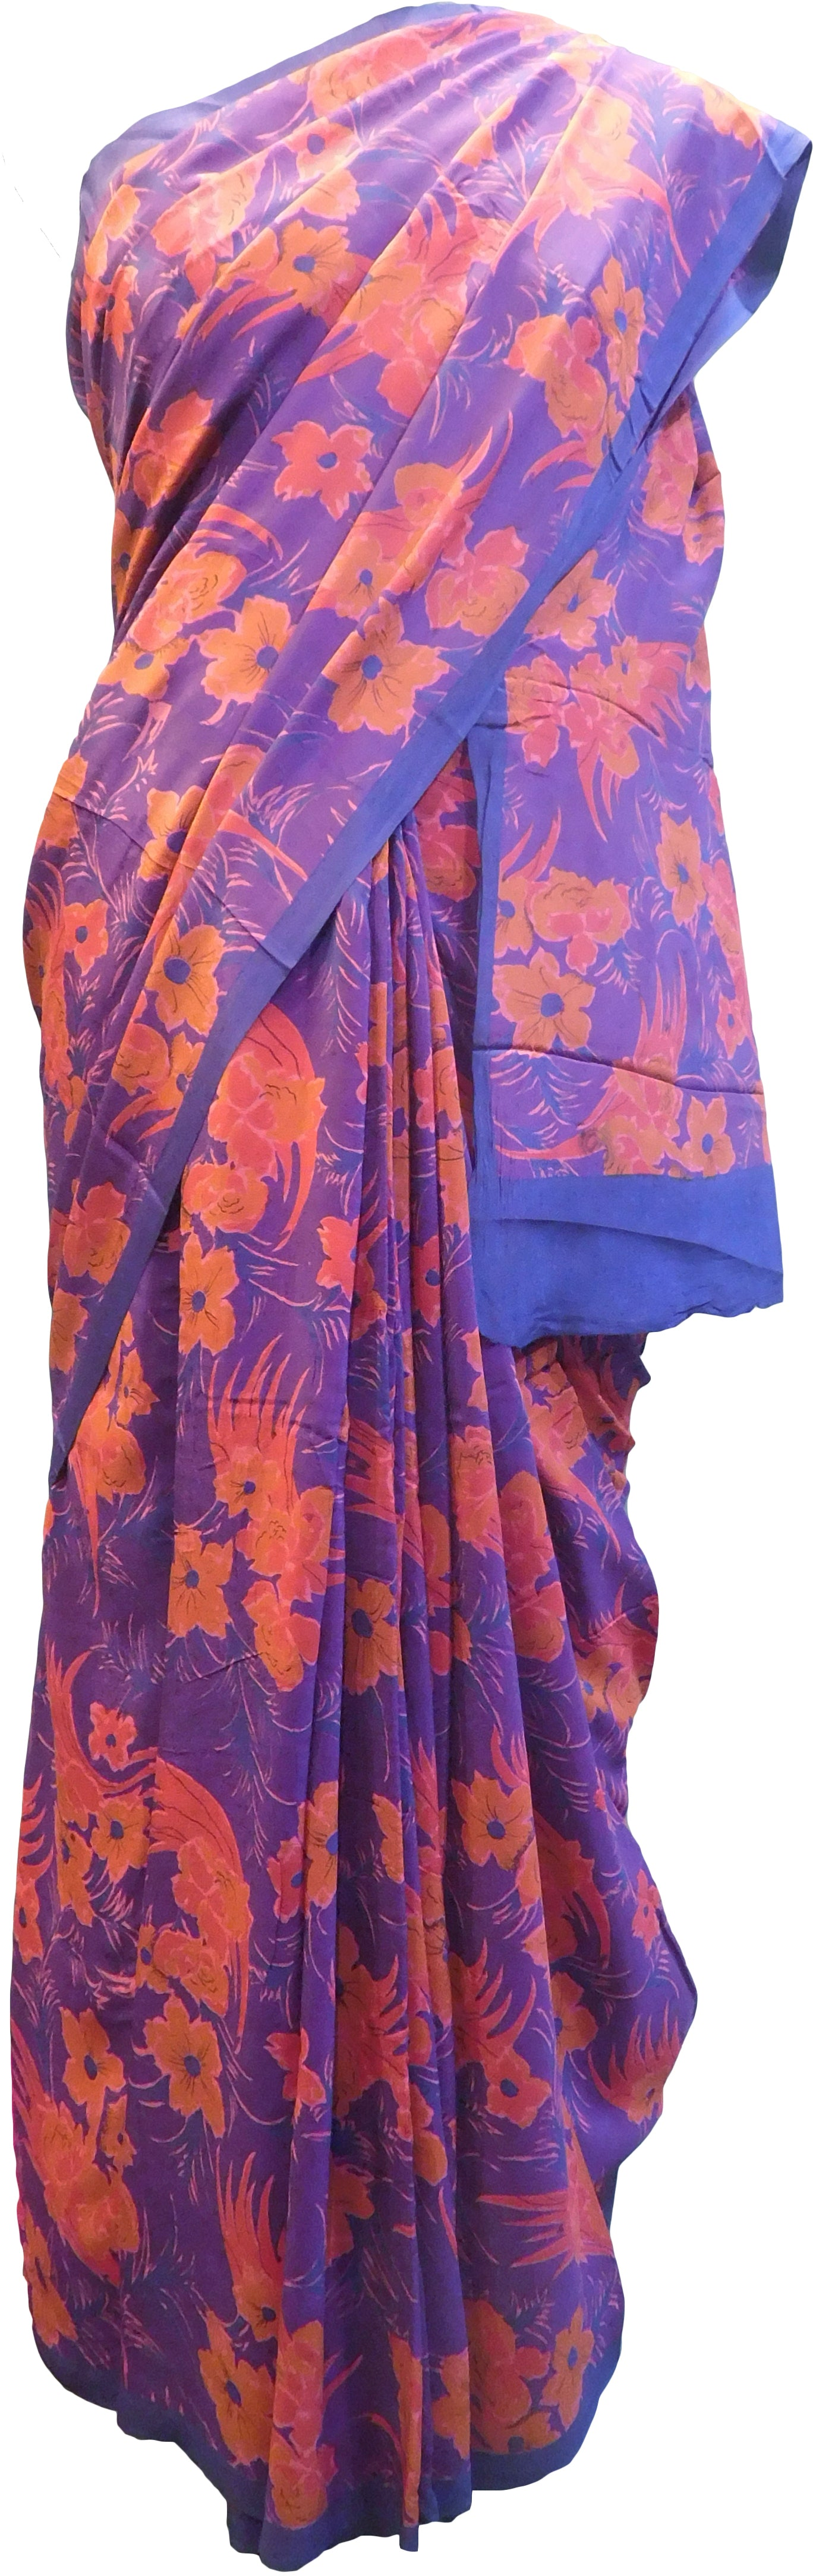 Multicolor Designer Wedding Partywear Pure Crepe Hand Brush Reprinted Kolkata Saree Sari With Blouse Piece  RP287